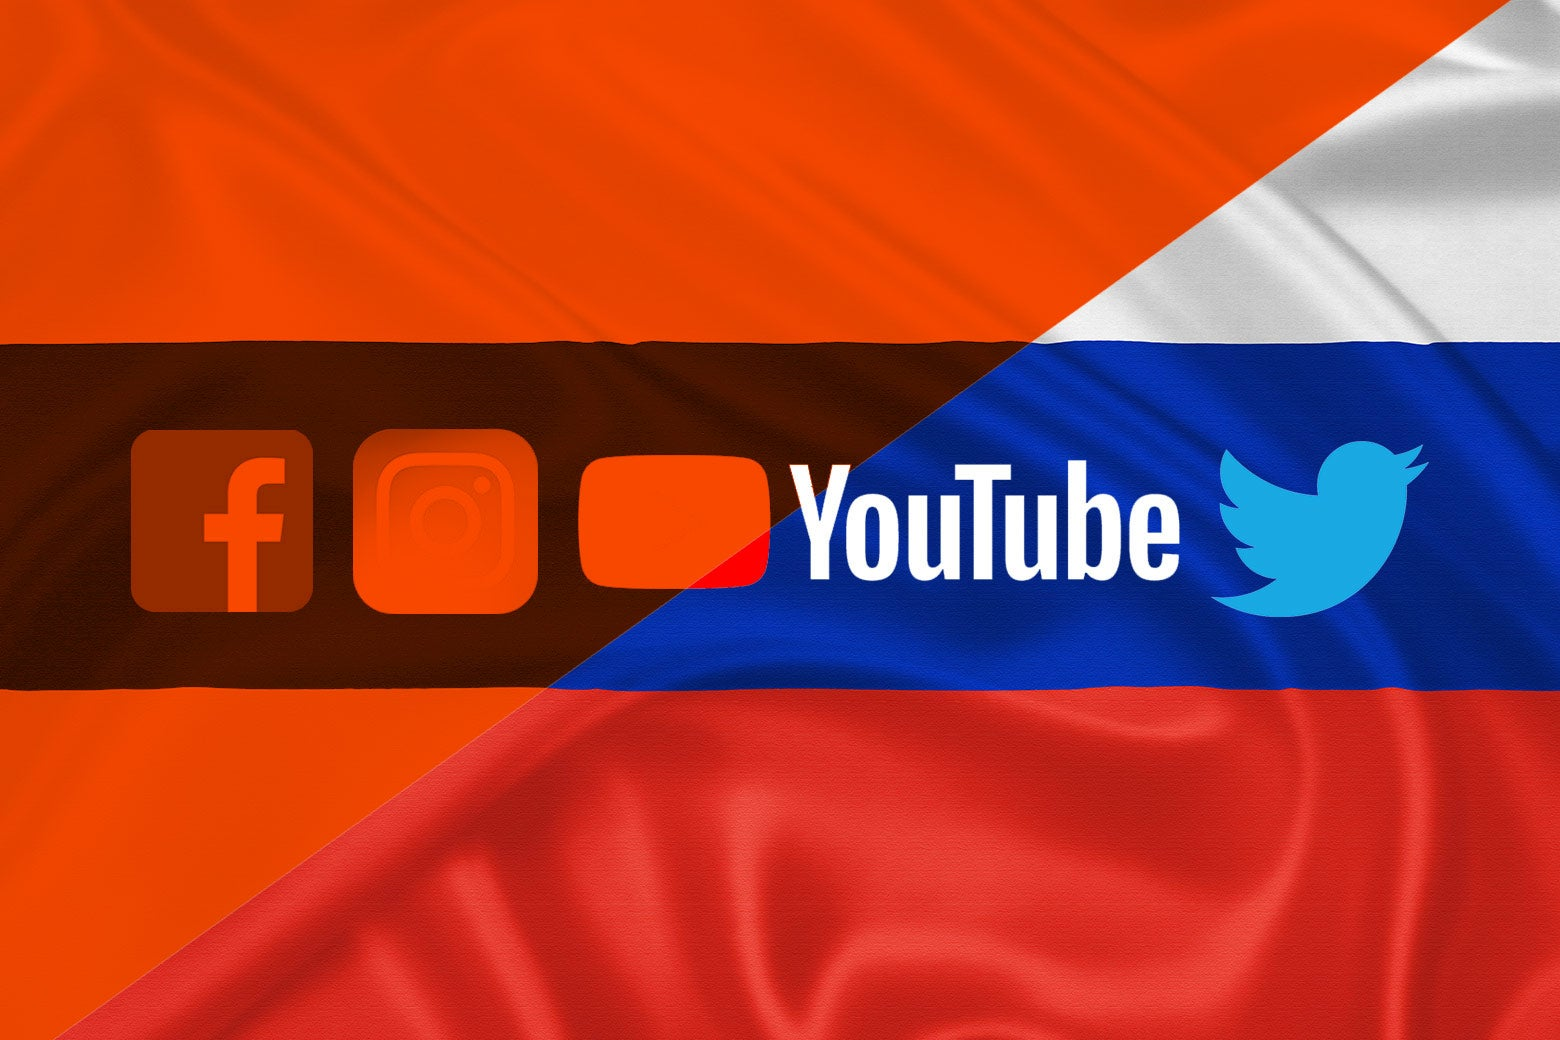 Social media logos over a Russian flag with the colors of the If Then logo overlapping.